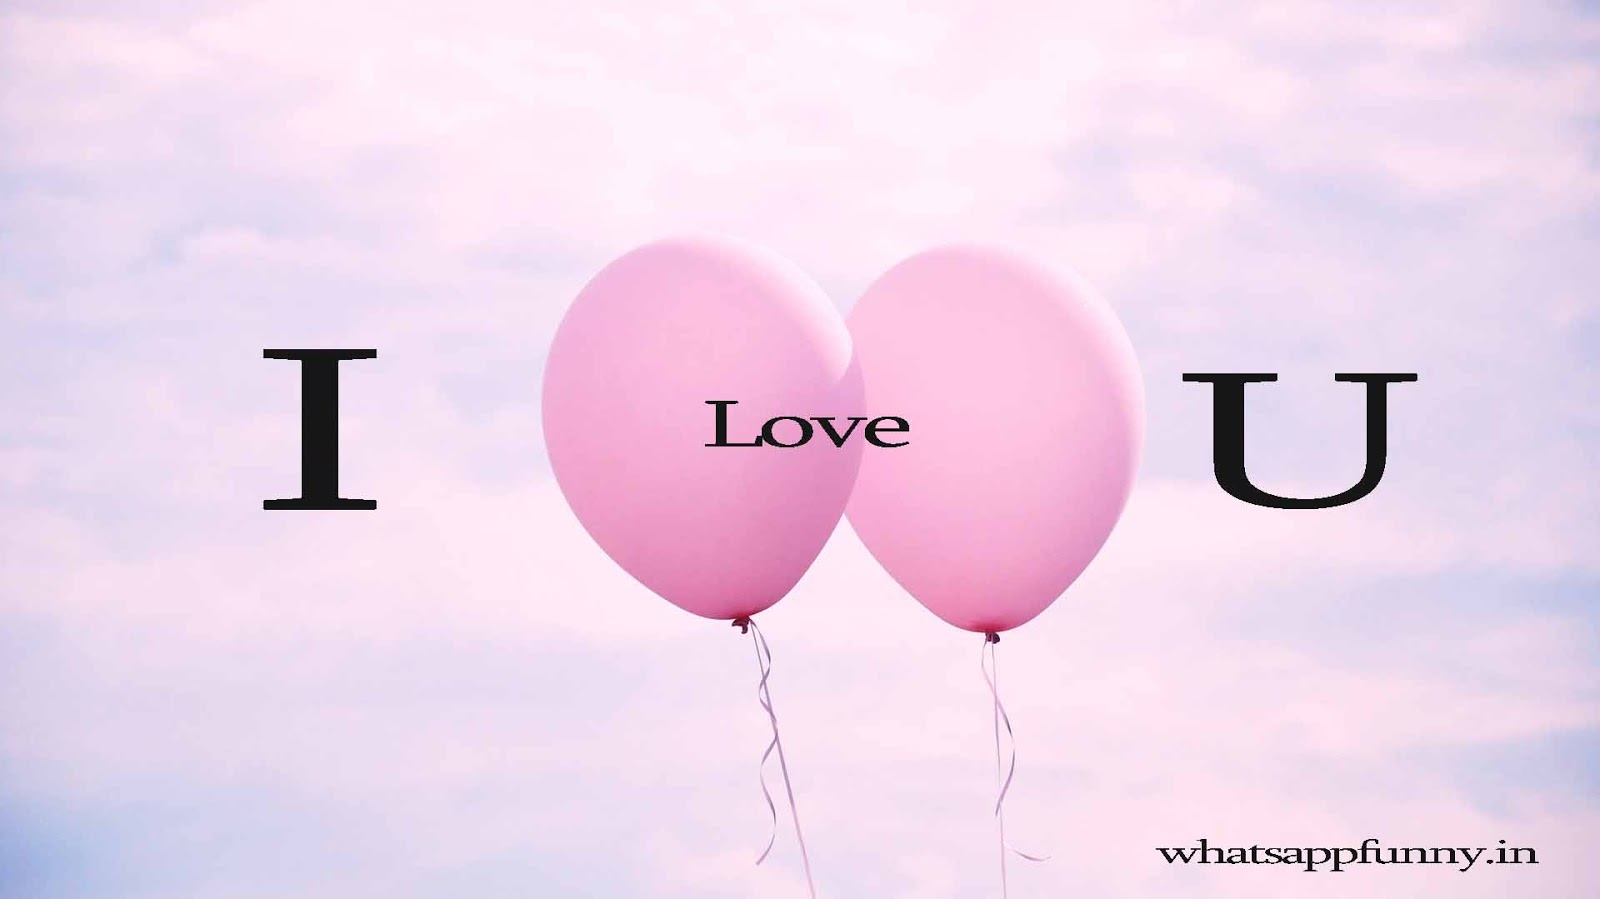 i love you on ballon image